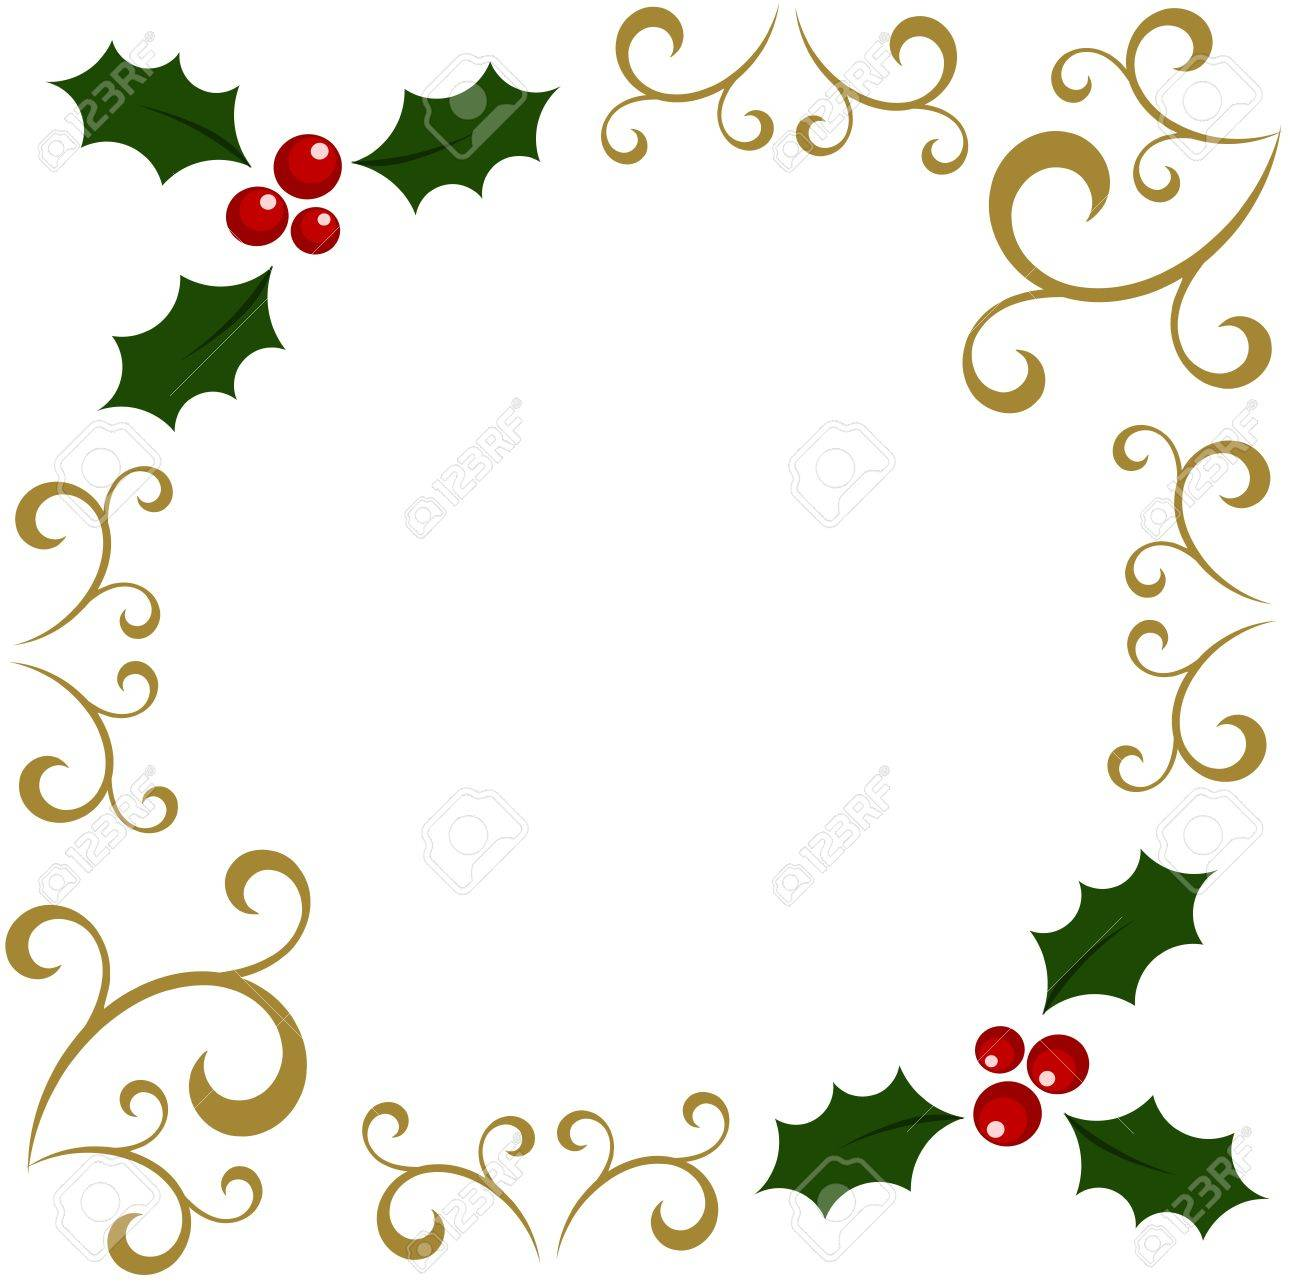 Christmas Holly Berry Border Clipart.